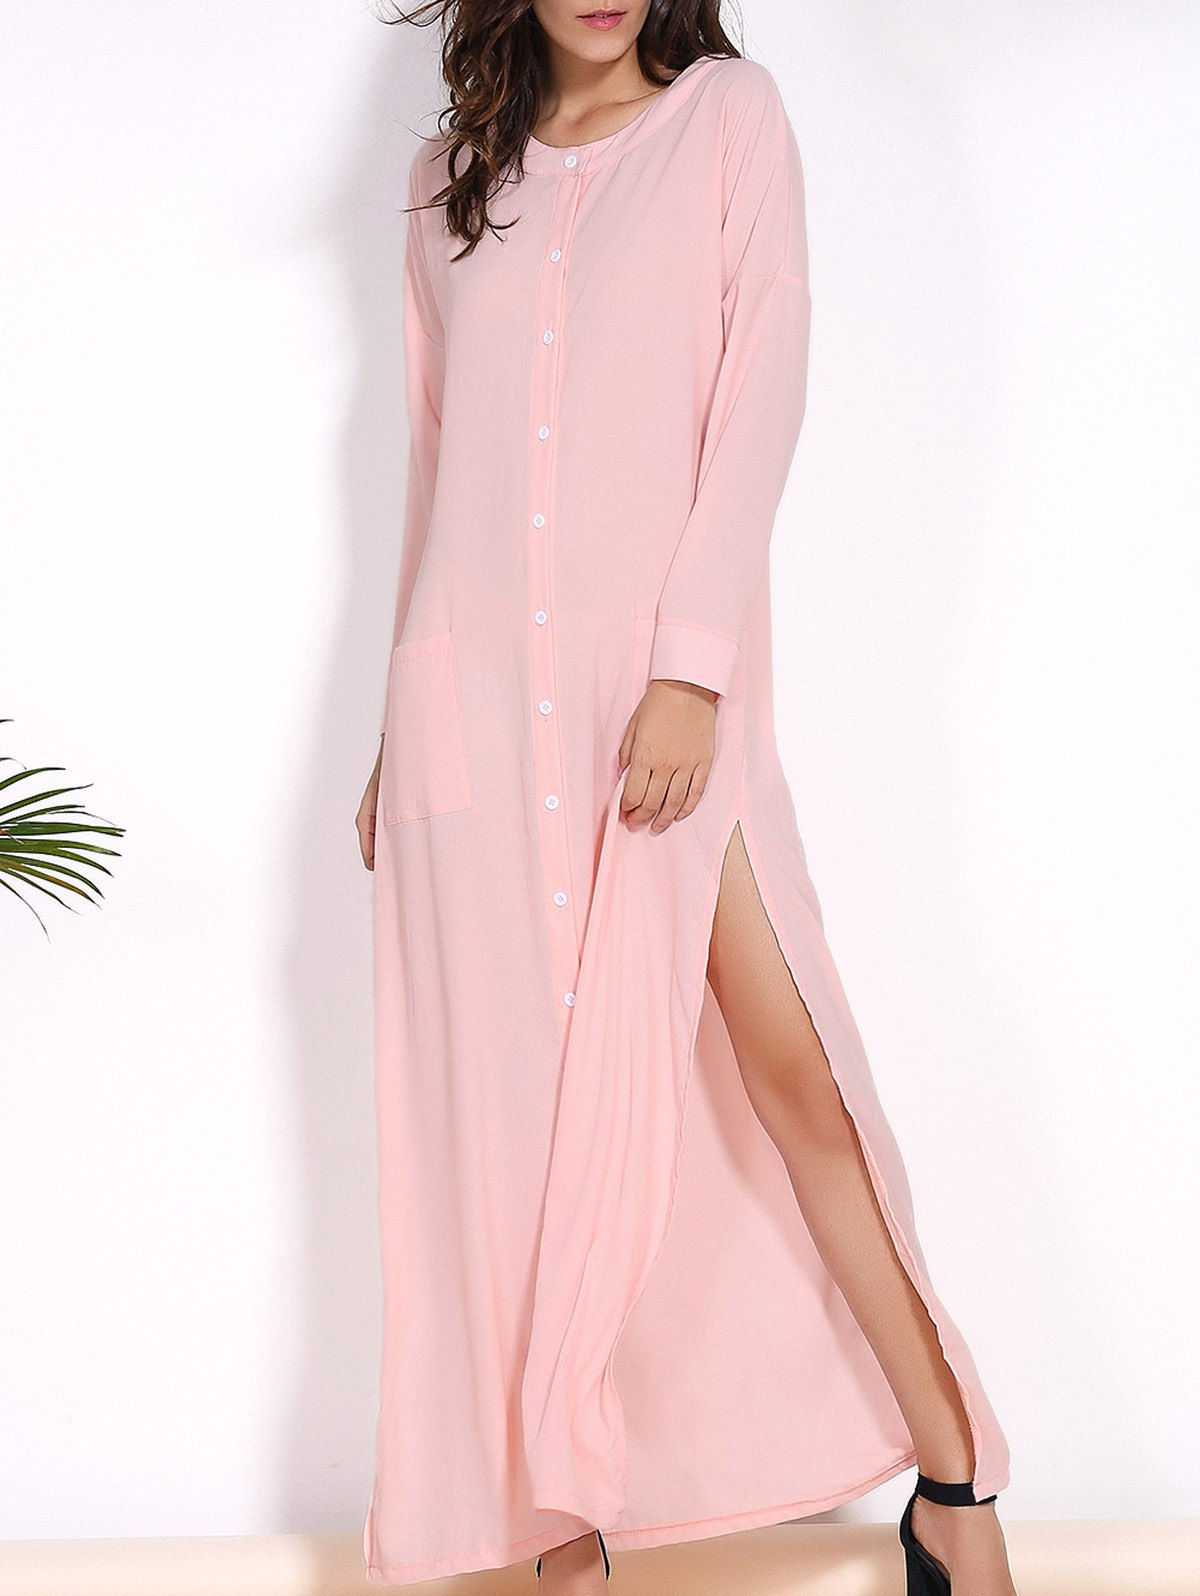 Trendy Round Collar Long Sleeve Pink High Slit Women's Cover-Up Dress - PINK S